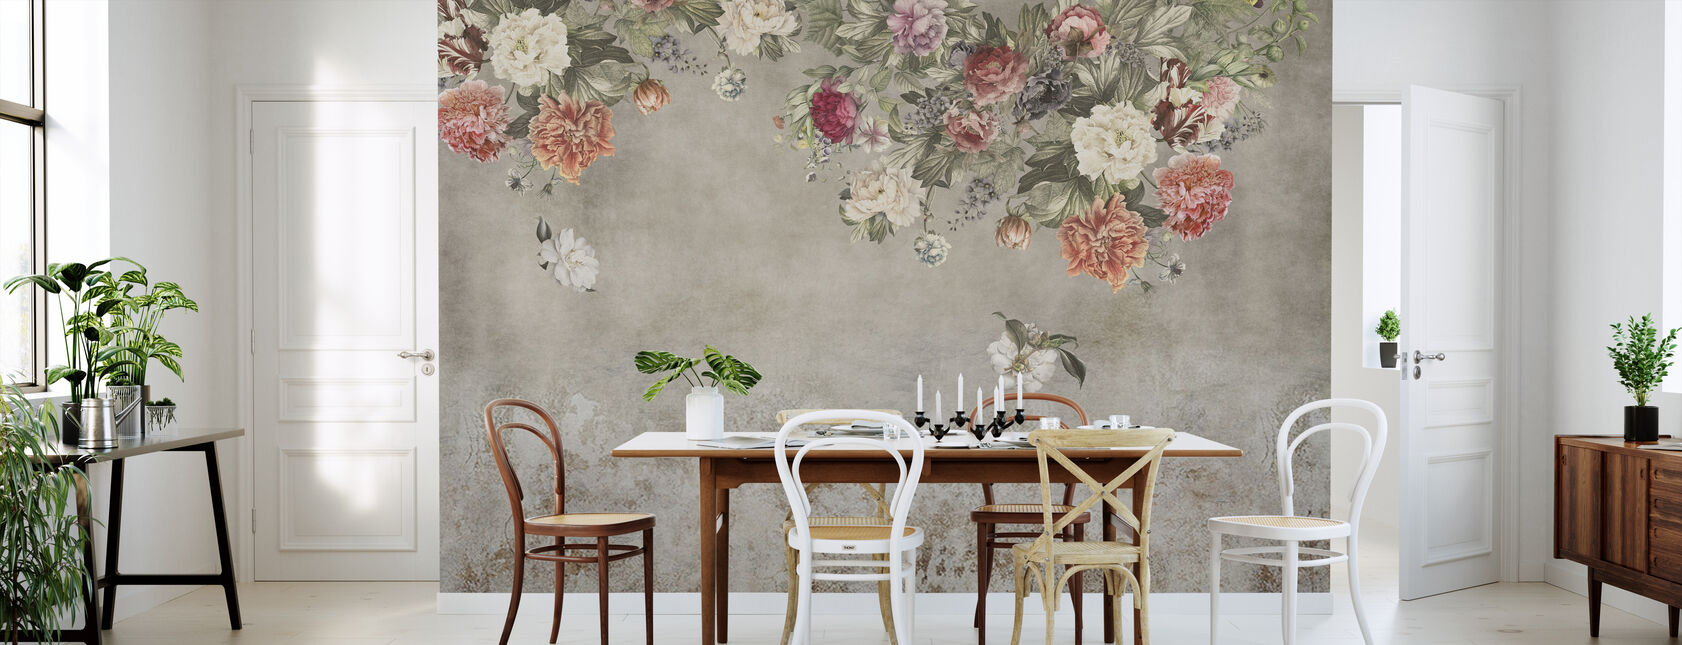 Vintage Flower Wall - Wallpaper - Kitchen